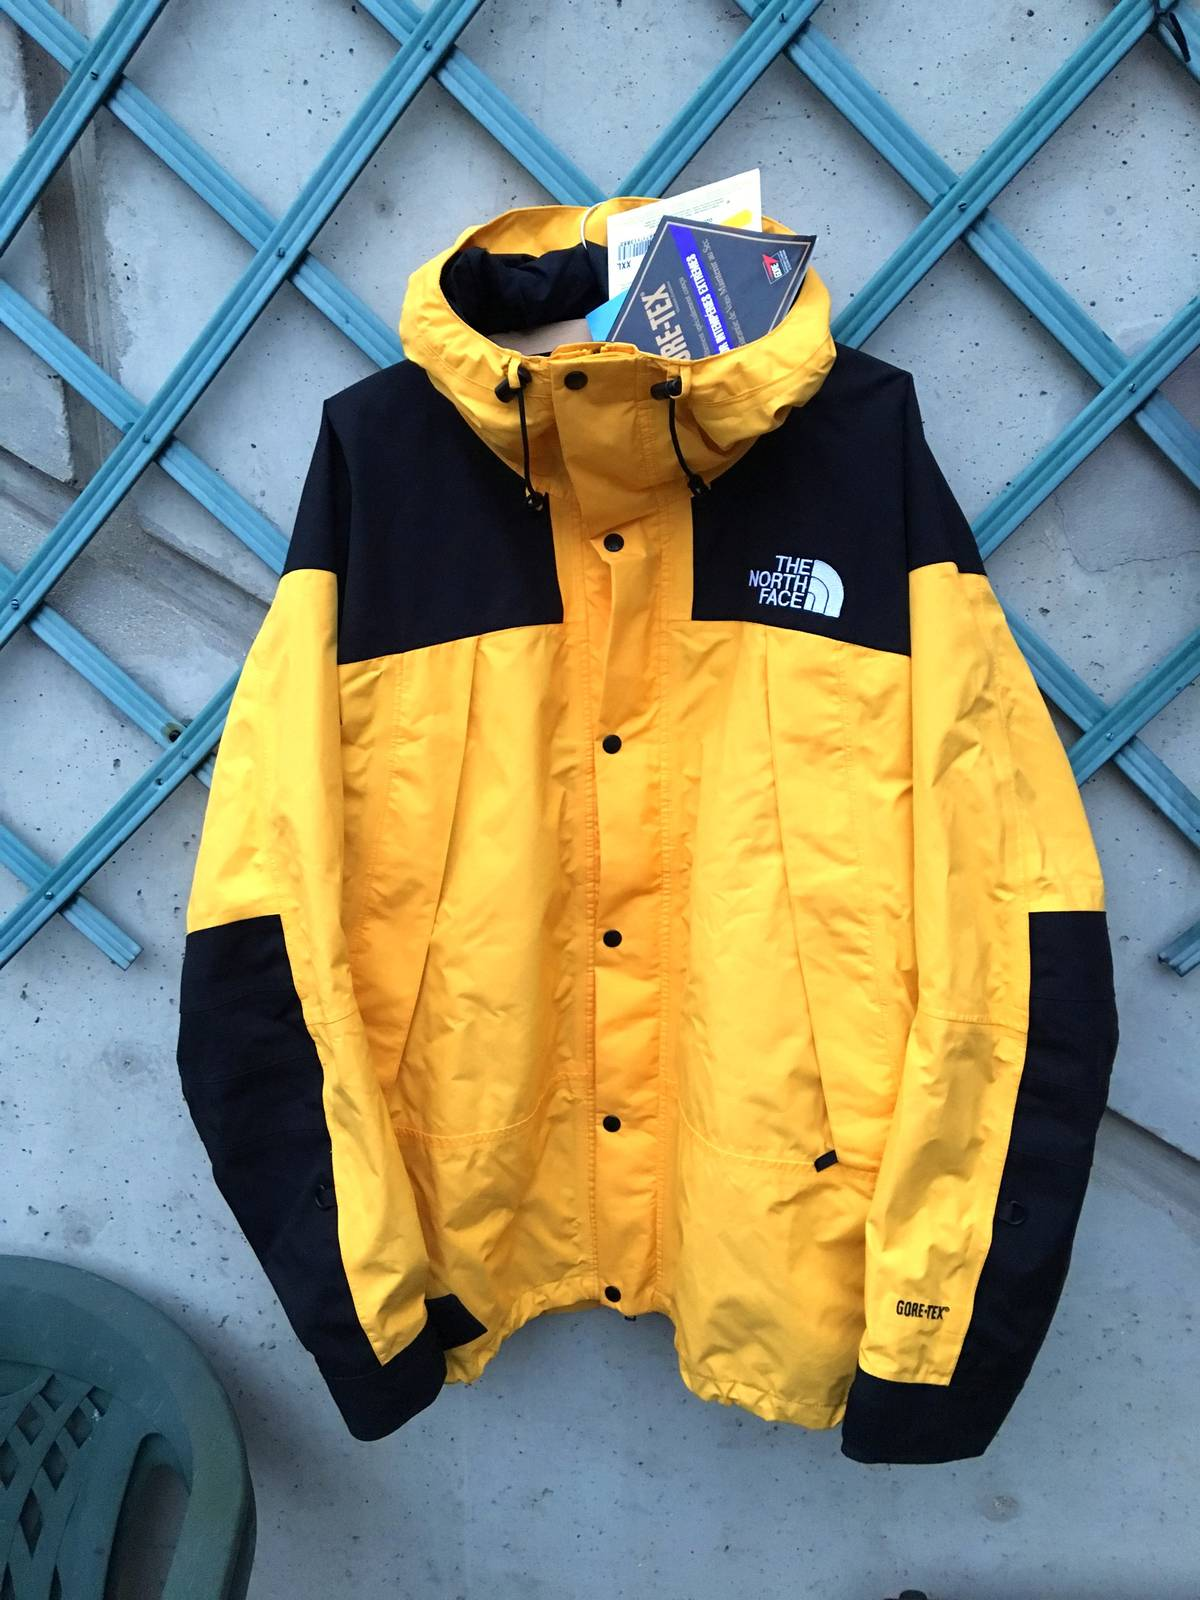 heli trans with North Face Gore Tex Hooded Jacket Vintage Northfaceoutlet En on North Face Gore Tex Hooded Jacket Vintage Northfaceoutlet en in addition C4 Transmission Help Wont Go Forward In Ground furthermore Skiing further Damen Windfarm Serviceschiff also Spezialtransporte.